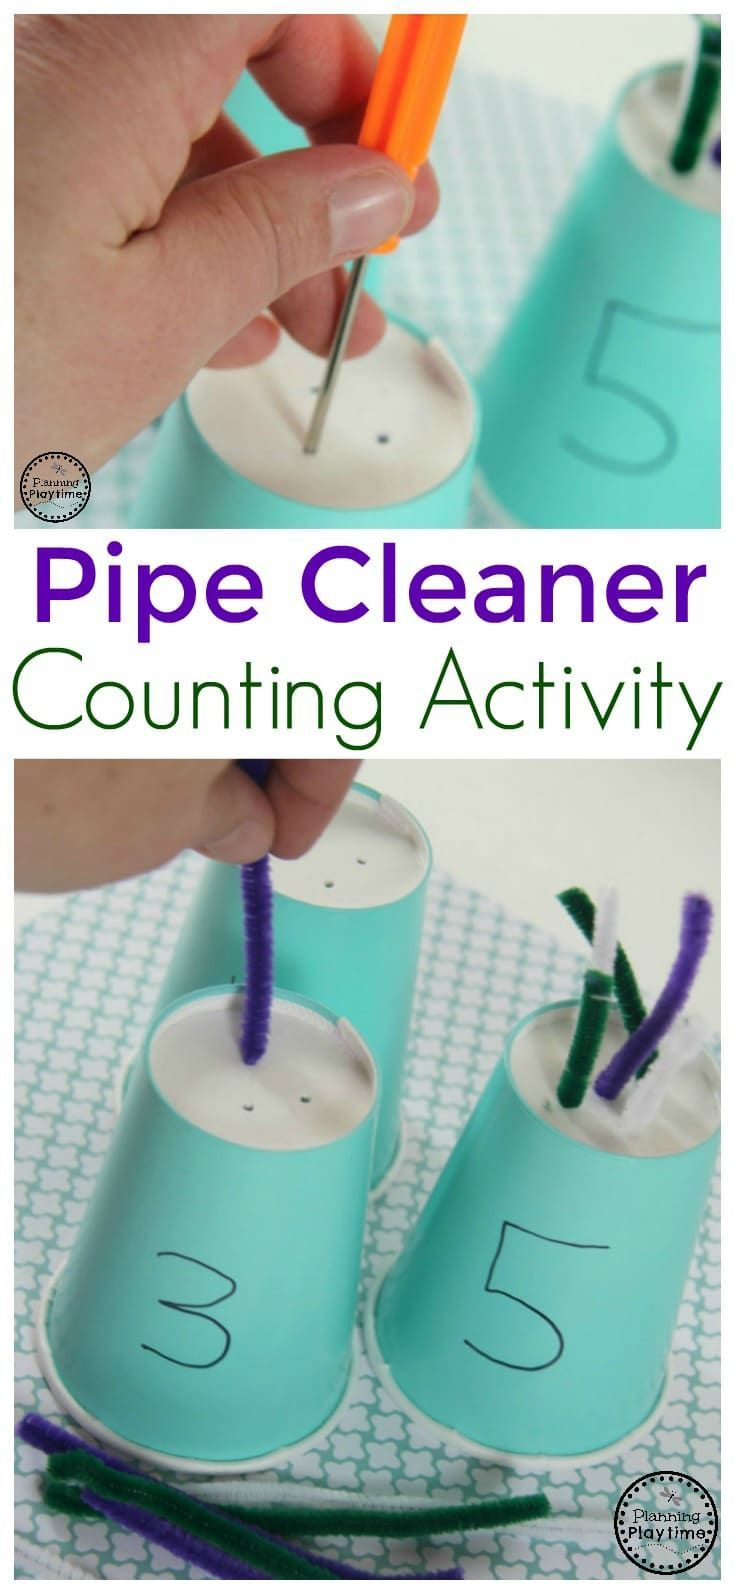 Pipe Cleaner Counting Activity for Kids | Numbers | Pinterest ...